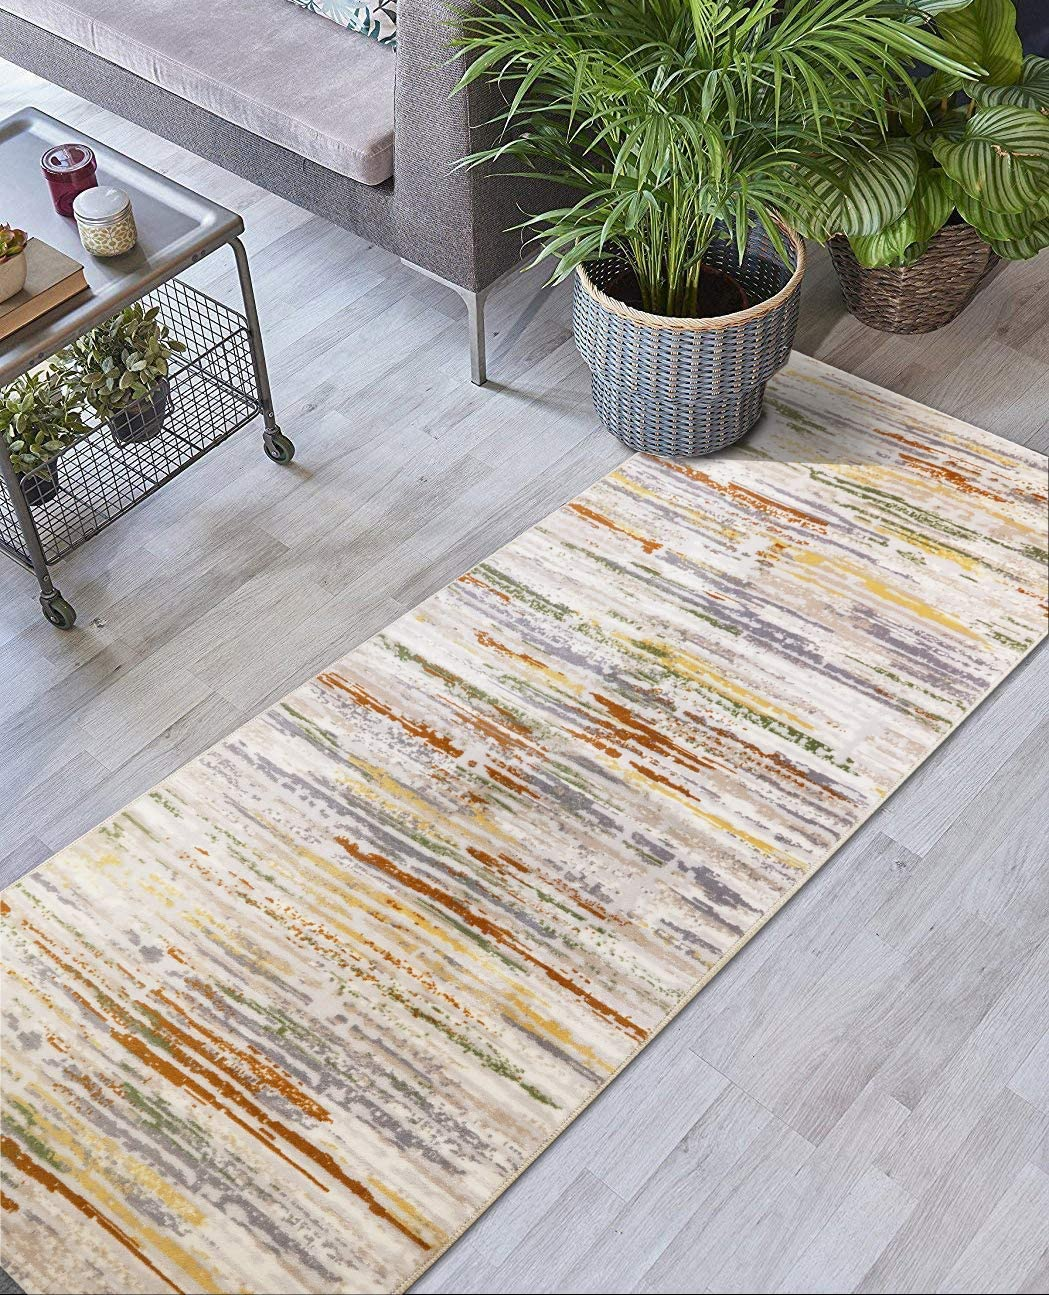 ORFA HOME Custom Size Hallway Runner Rug, Slip Resistant, 39 inch Wide X Your Choice of Length, Striped, 39 inch X 5 feet